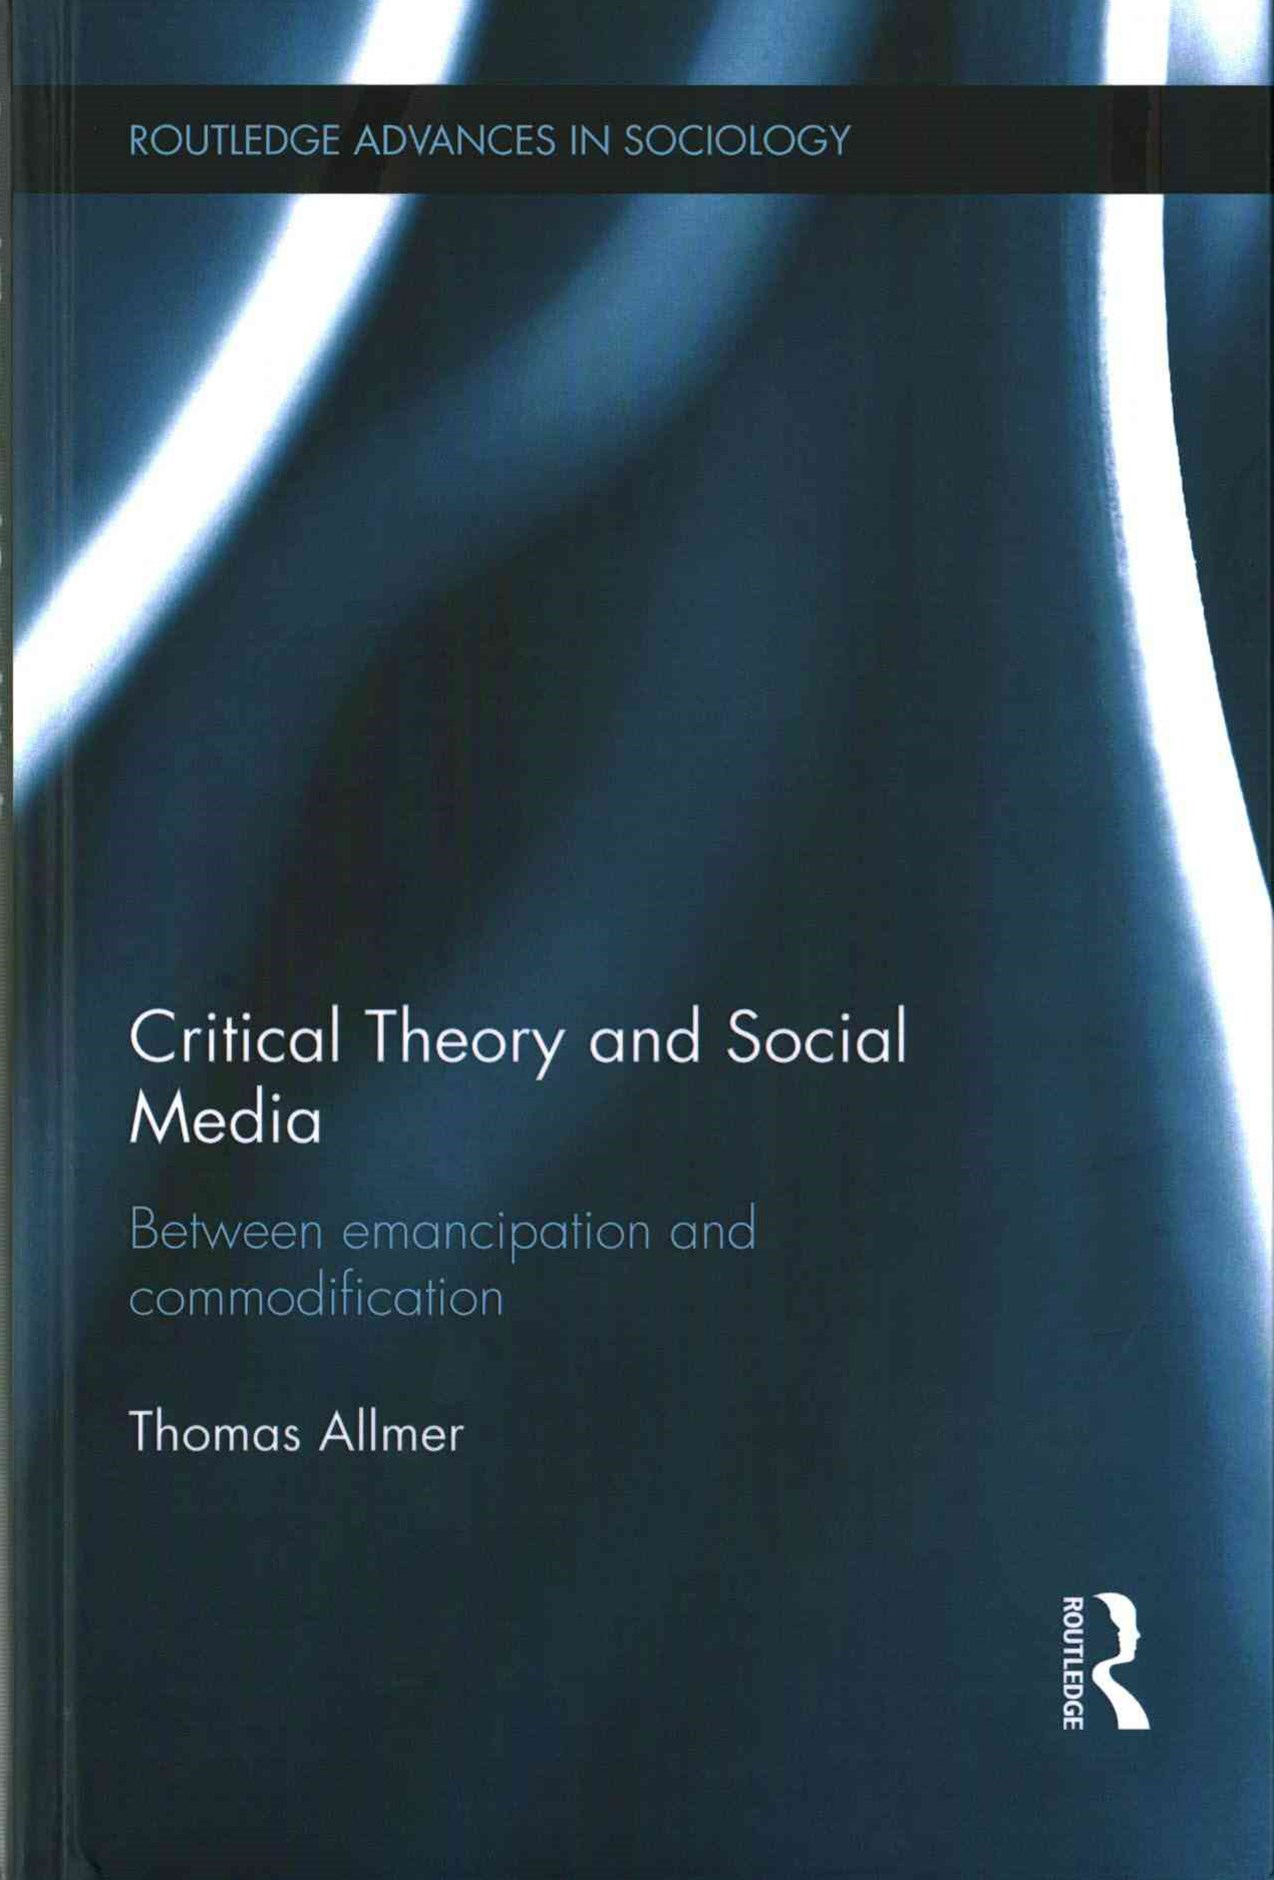 Critical Theory and Social Media